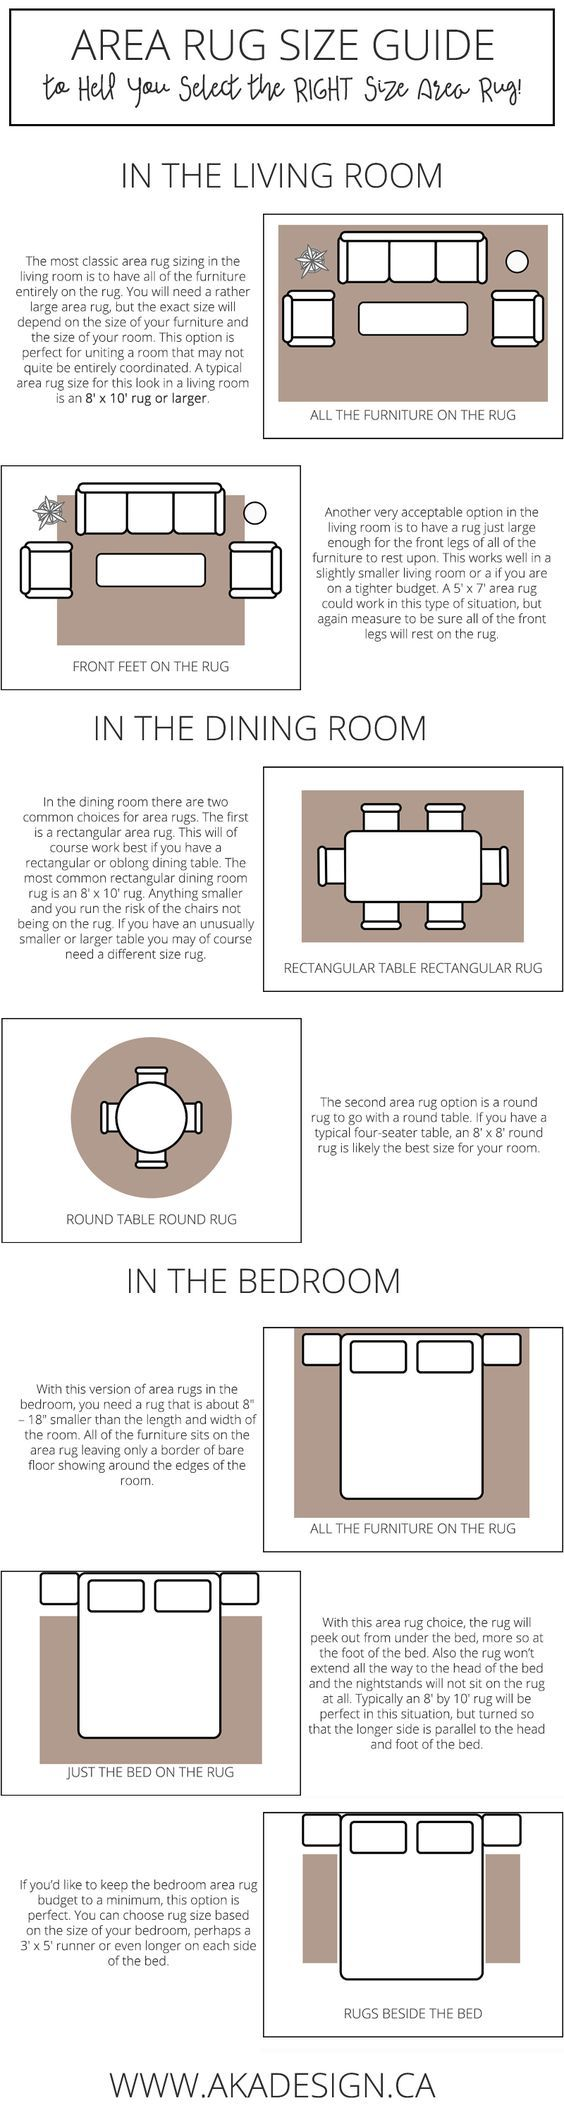 Area Rug Size Guide To Help You Select The RIGHT Size Area Rug!